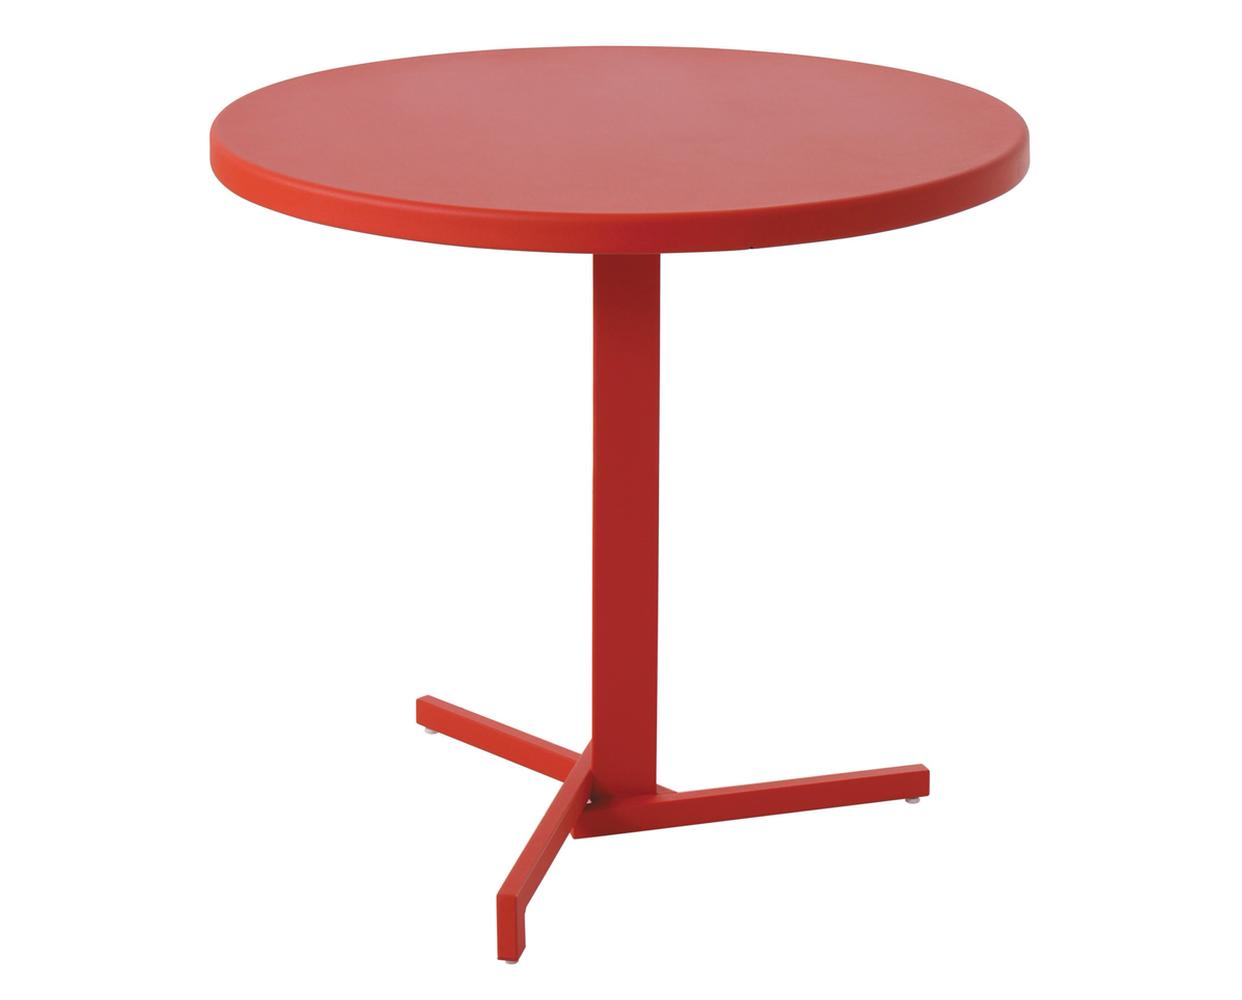 Tables Product Categories Aptos Cruz